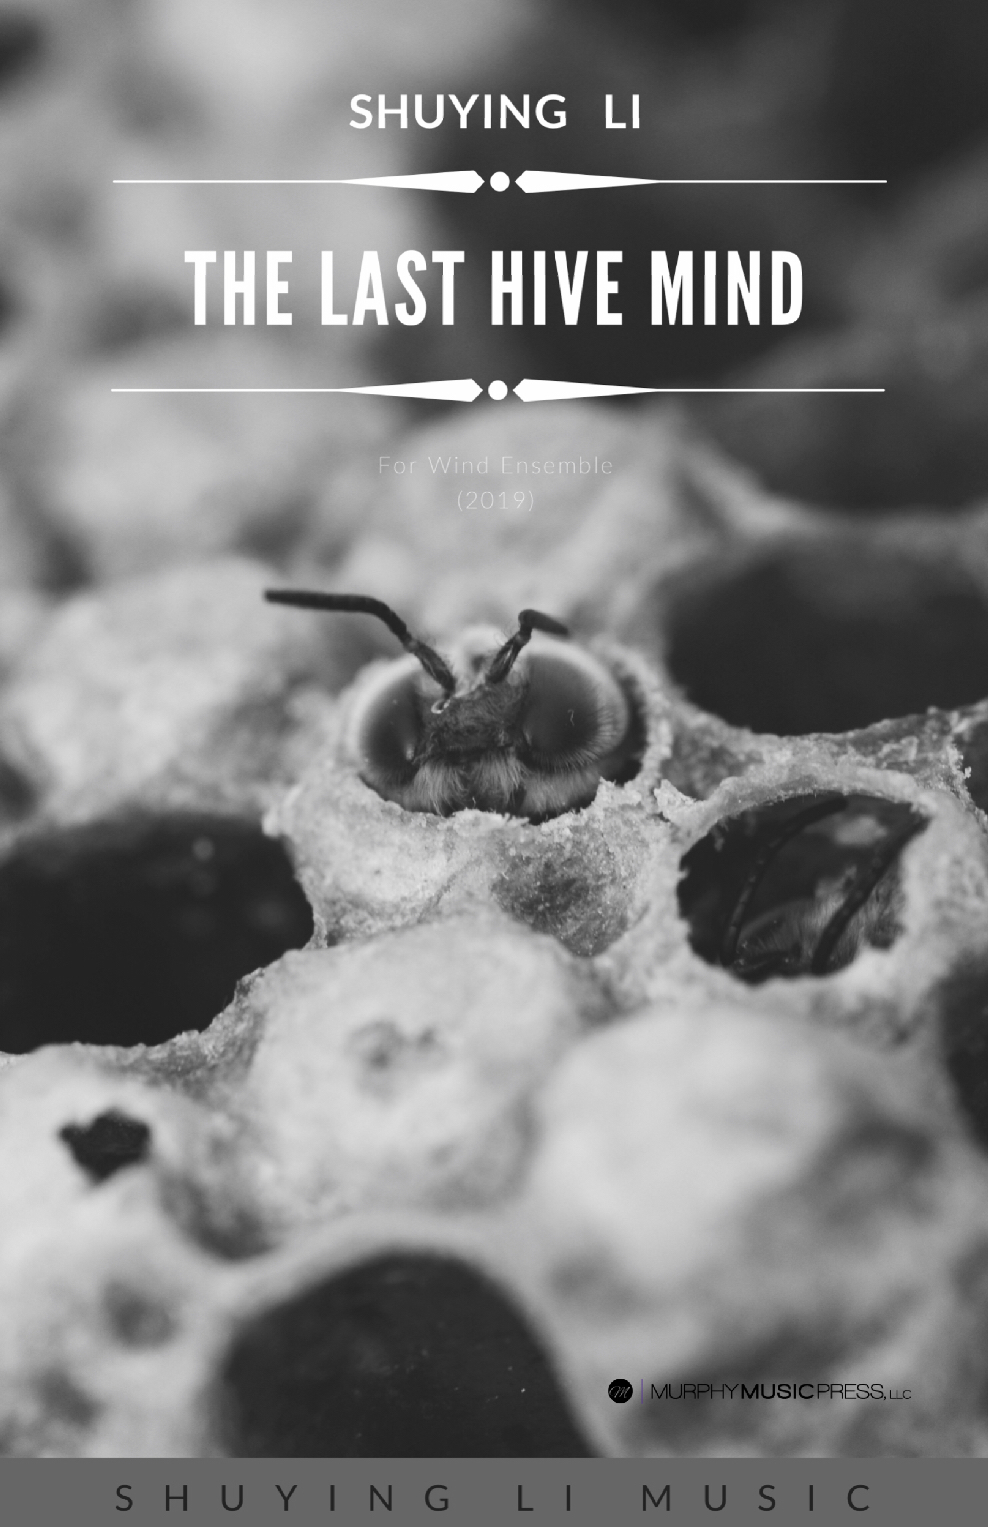 The Last Hivemind by Shuying Li